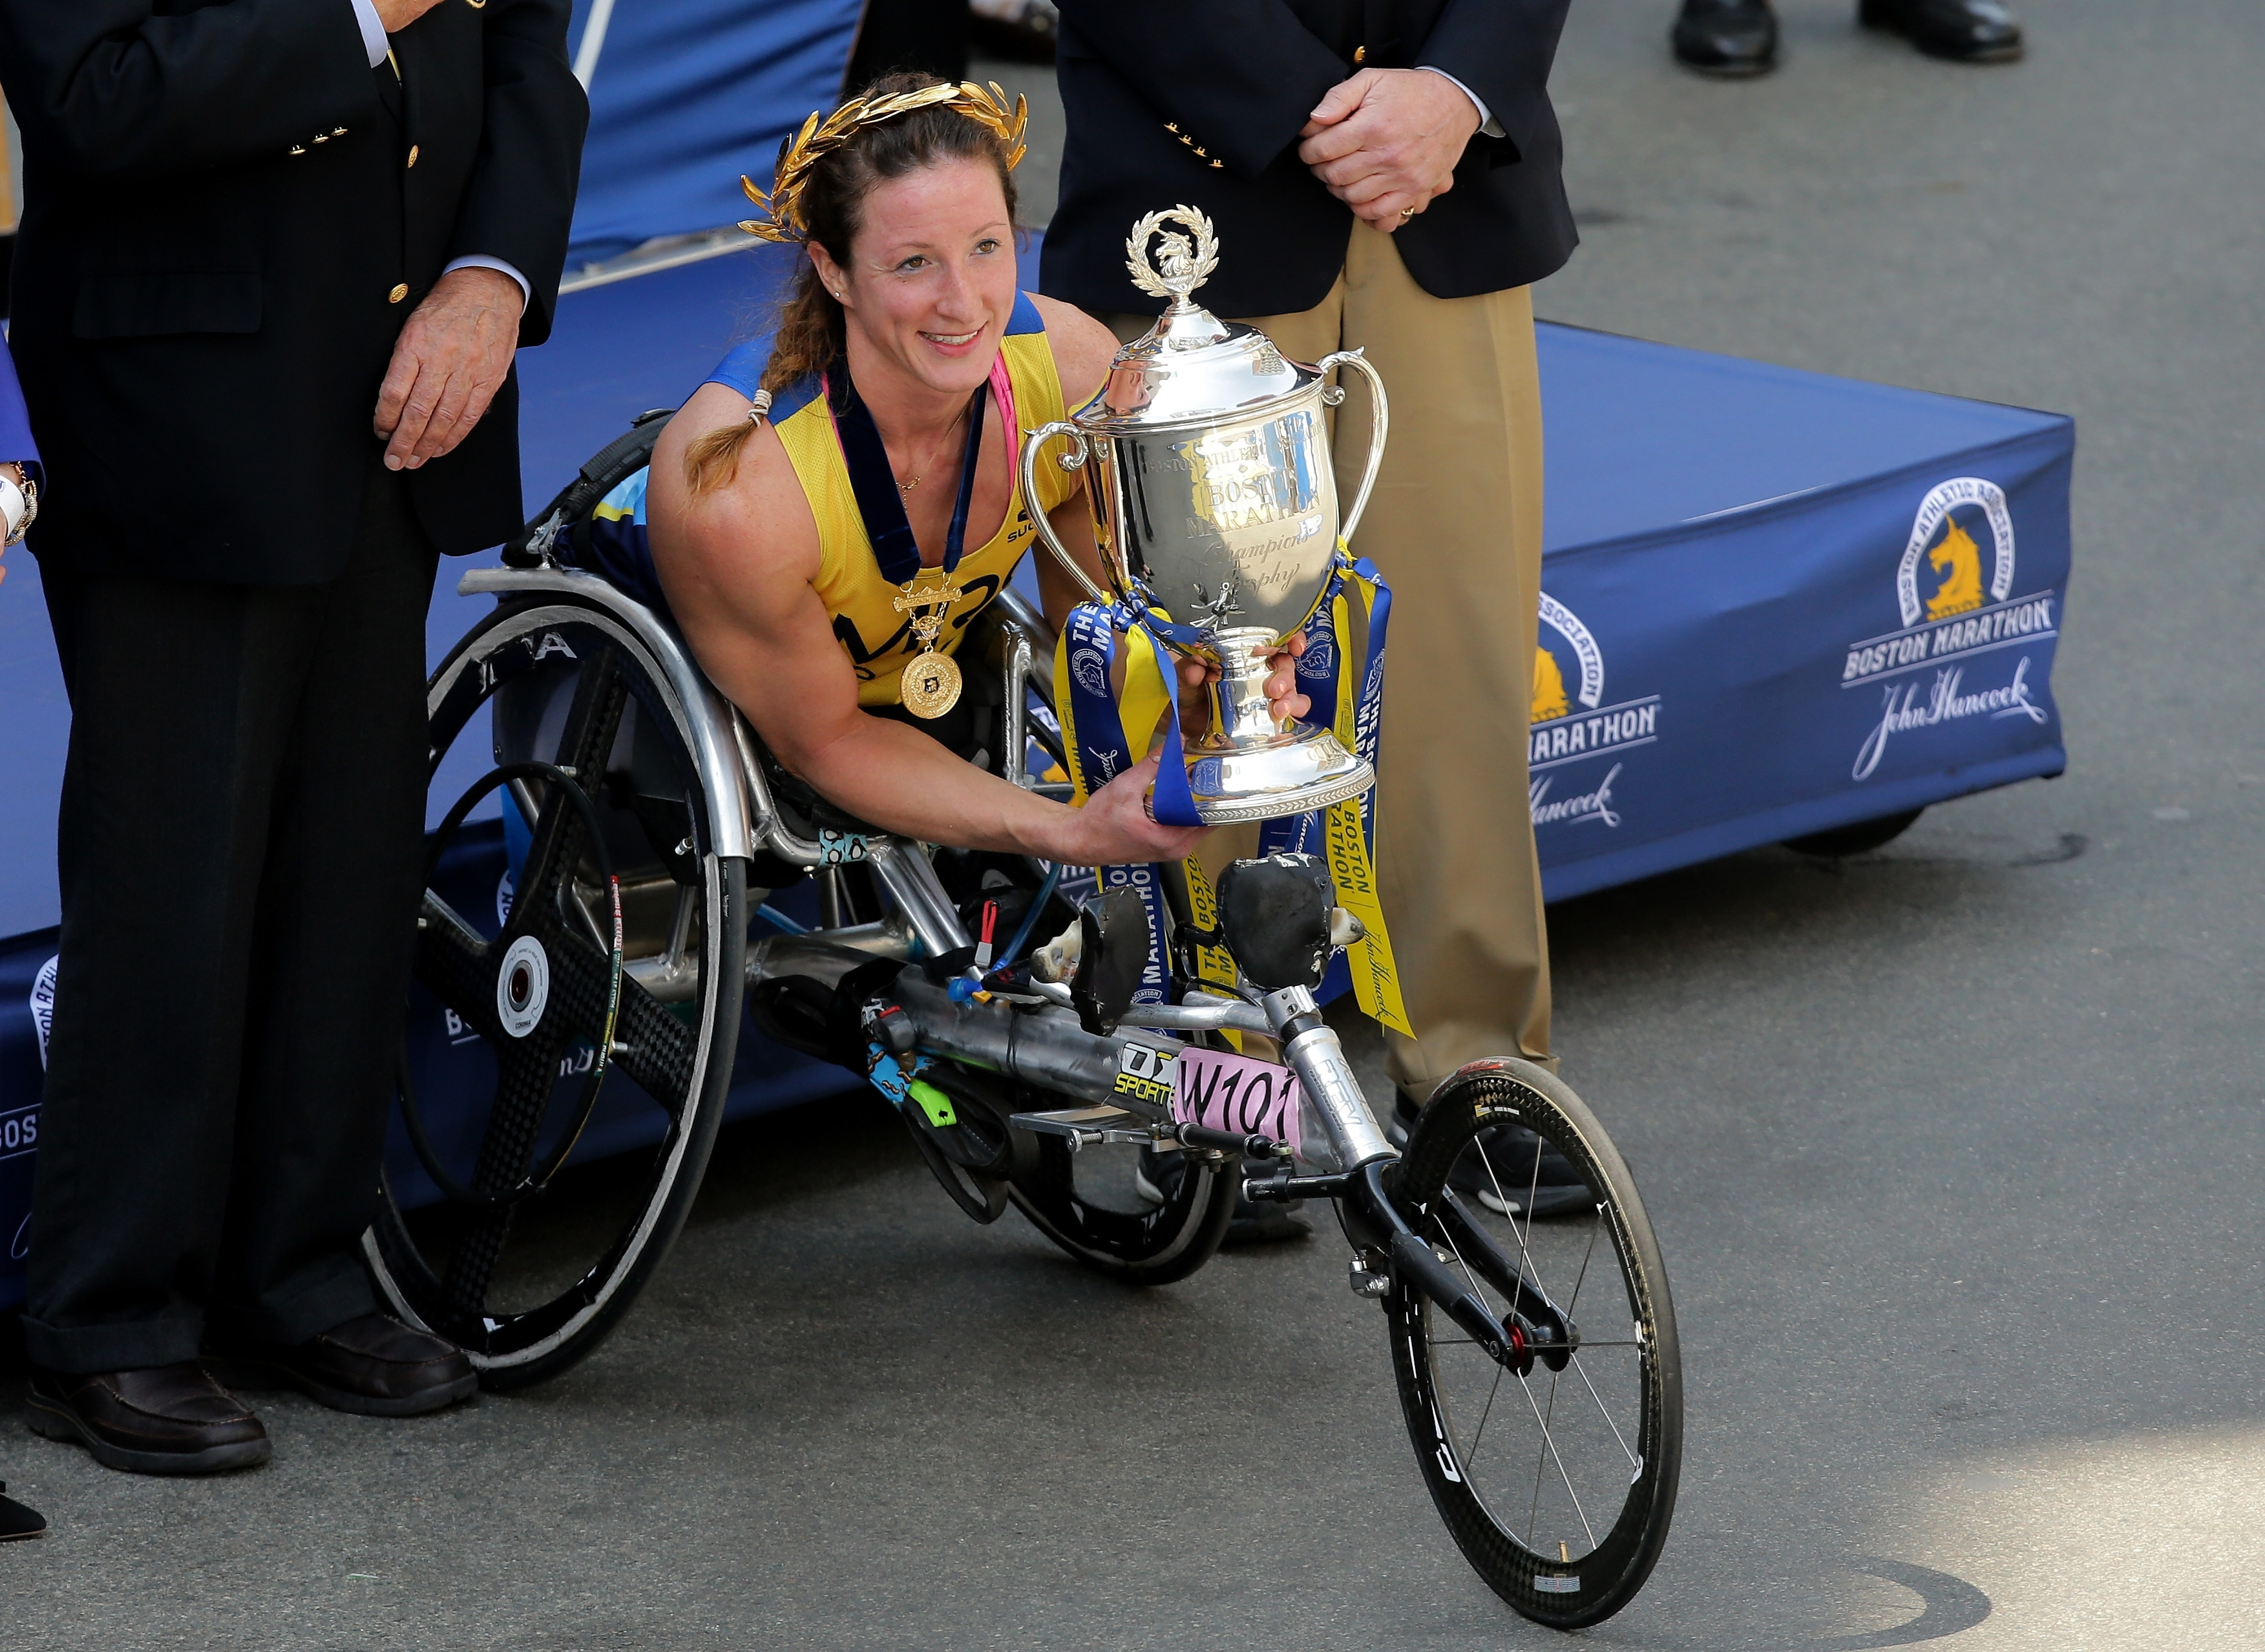 Tatyana McFadden of the United States poses after crossing the finish line to win the women's push rim wheelchair race during the 120th Boston Marathon on Monday.